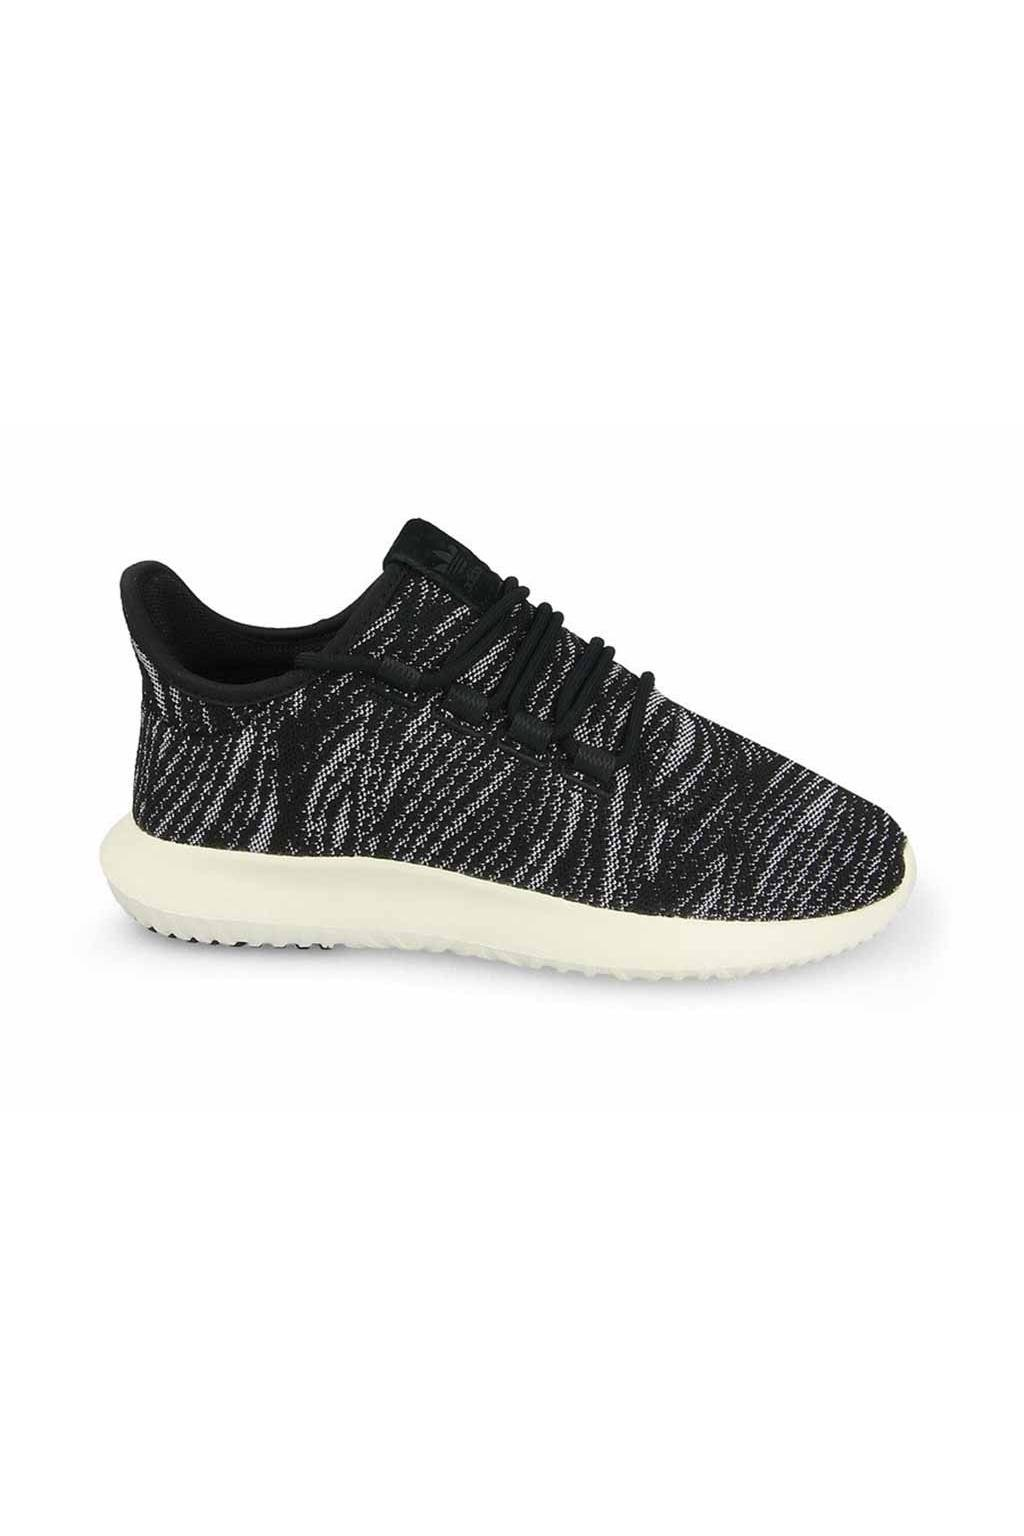 Adidas Tubular Shadow W CQ2464